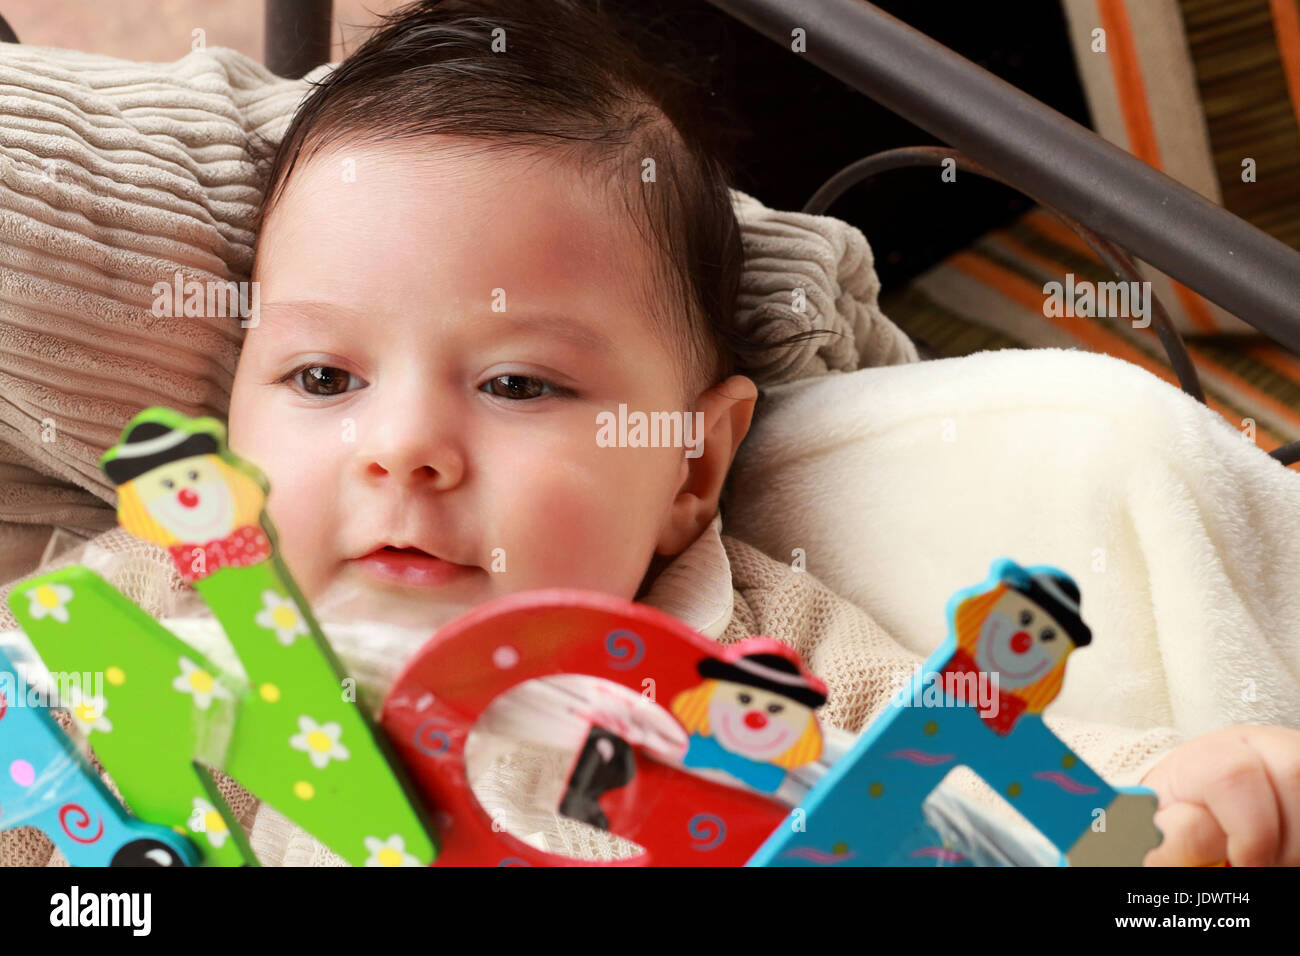 Baby playing with colorful letters - Stock Image